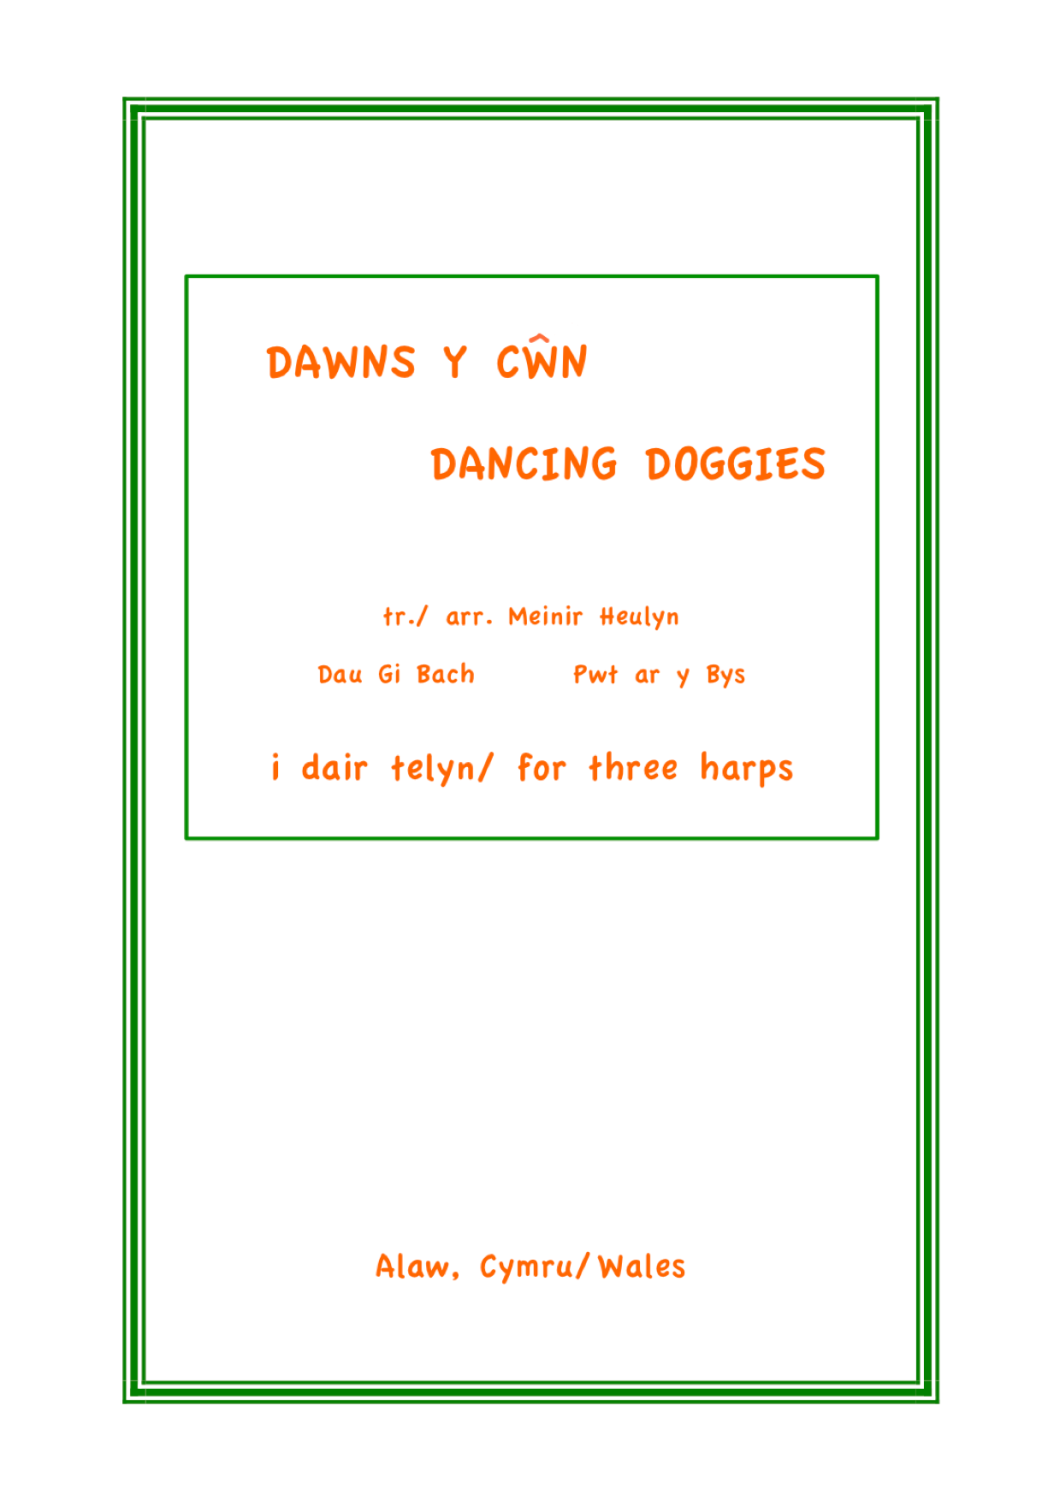 Dawns y Cwn - Dancing Doggies are Menir Heulyn